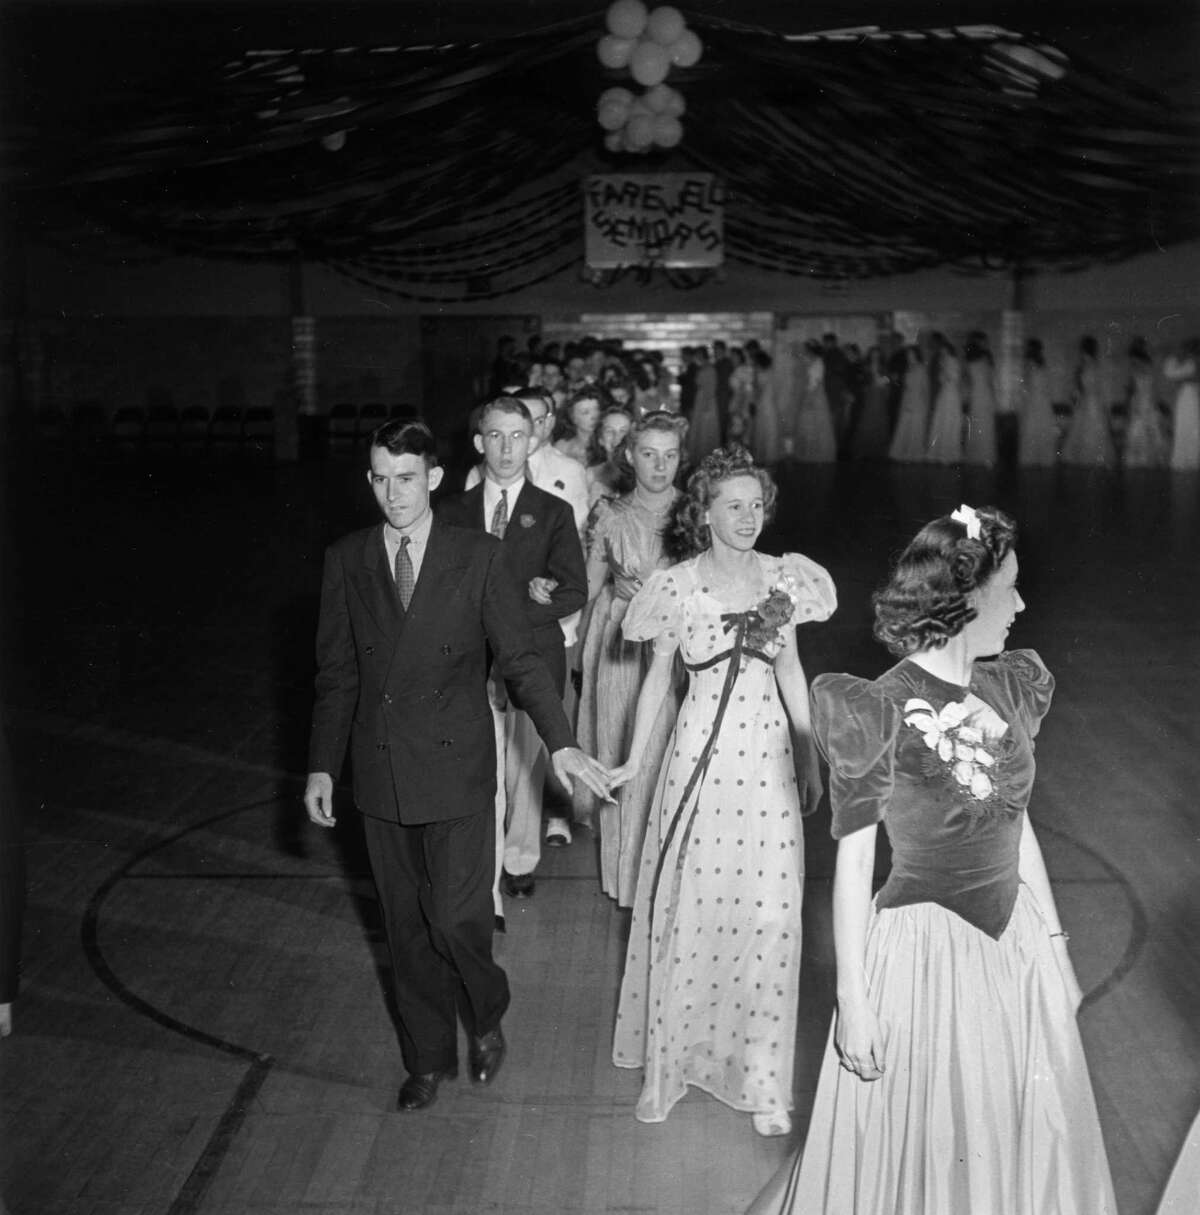 1942: High school seniors cross a gymnasium floor in a double file line at their prom dance, Greenbelt, Maryland.